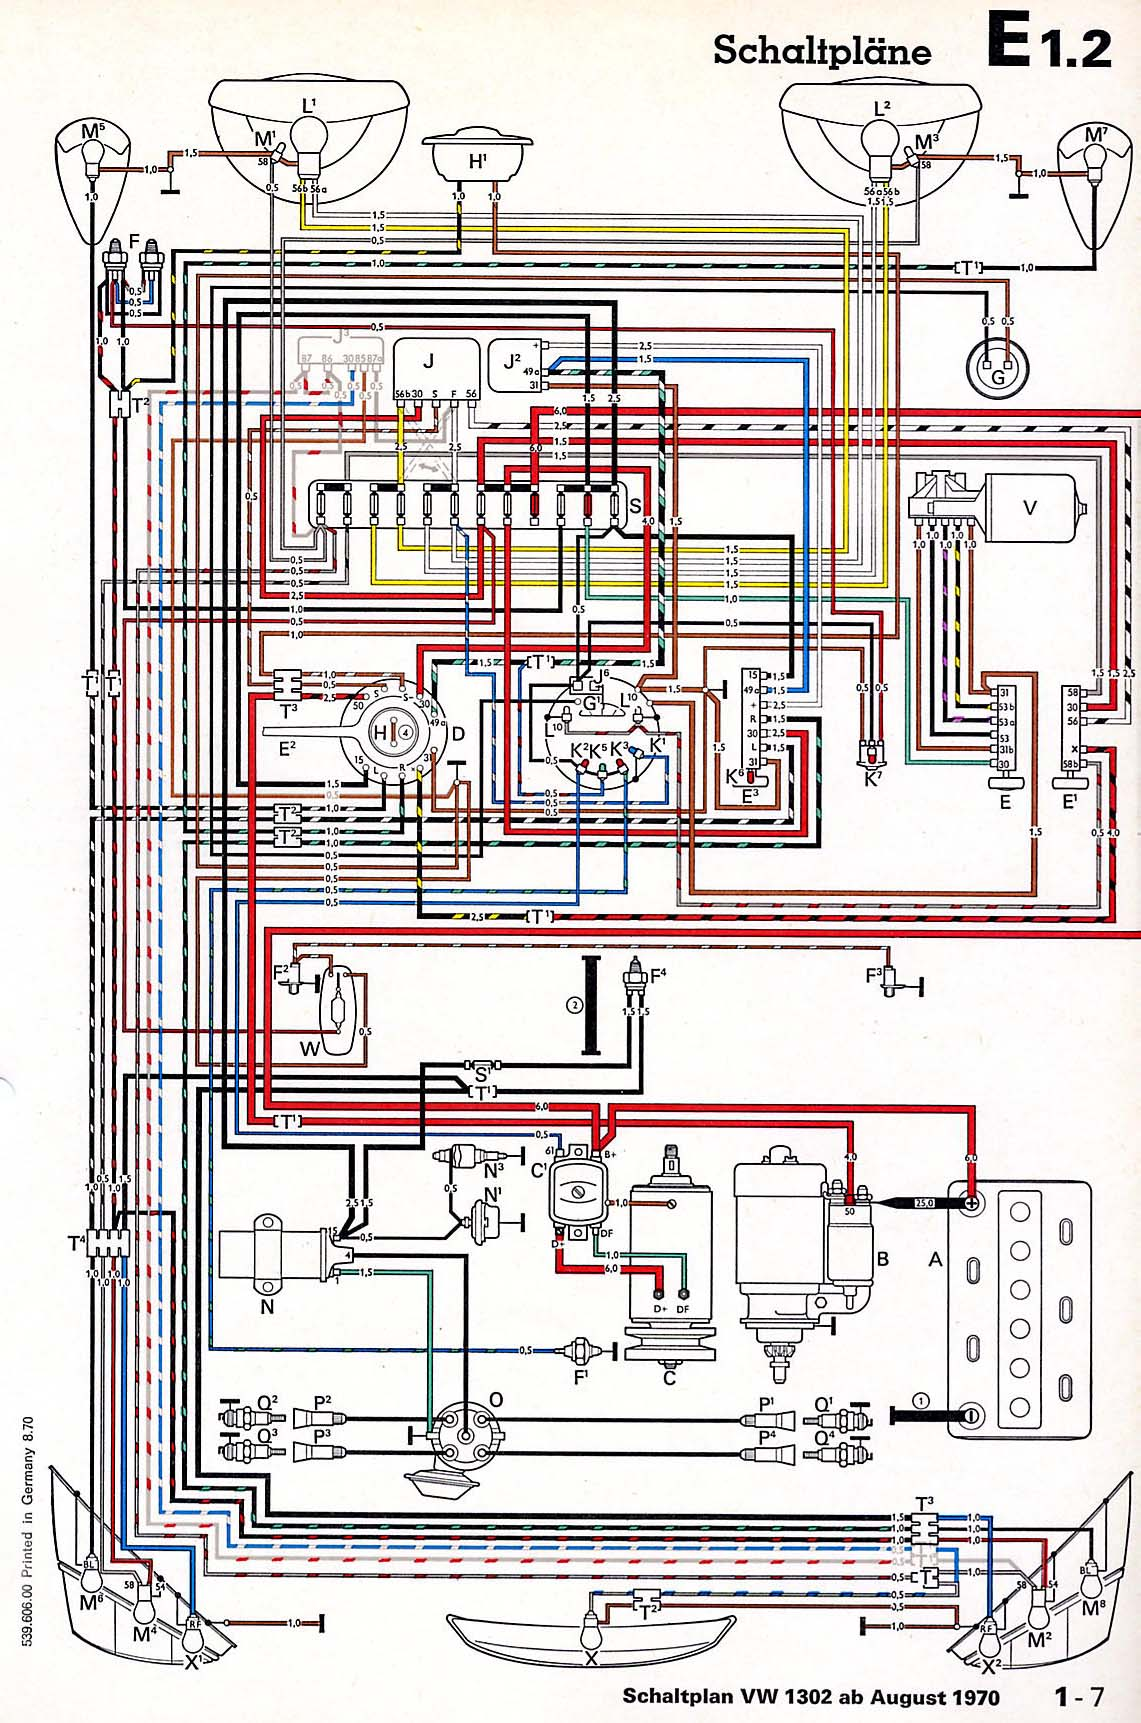 wiring_diagram_1970 wiring diagram for 1971 vw beetle the wiring diagram 1970 vw beetle wiring diagram at panicattacktreatment.co